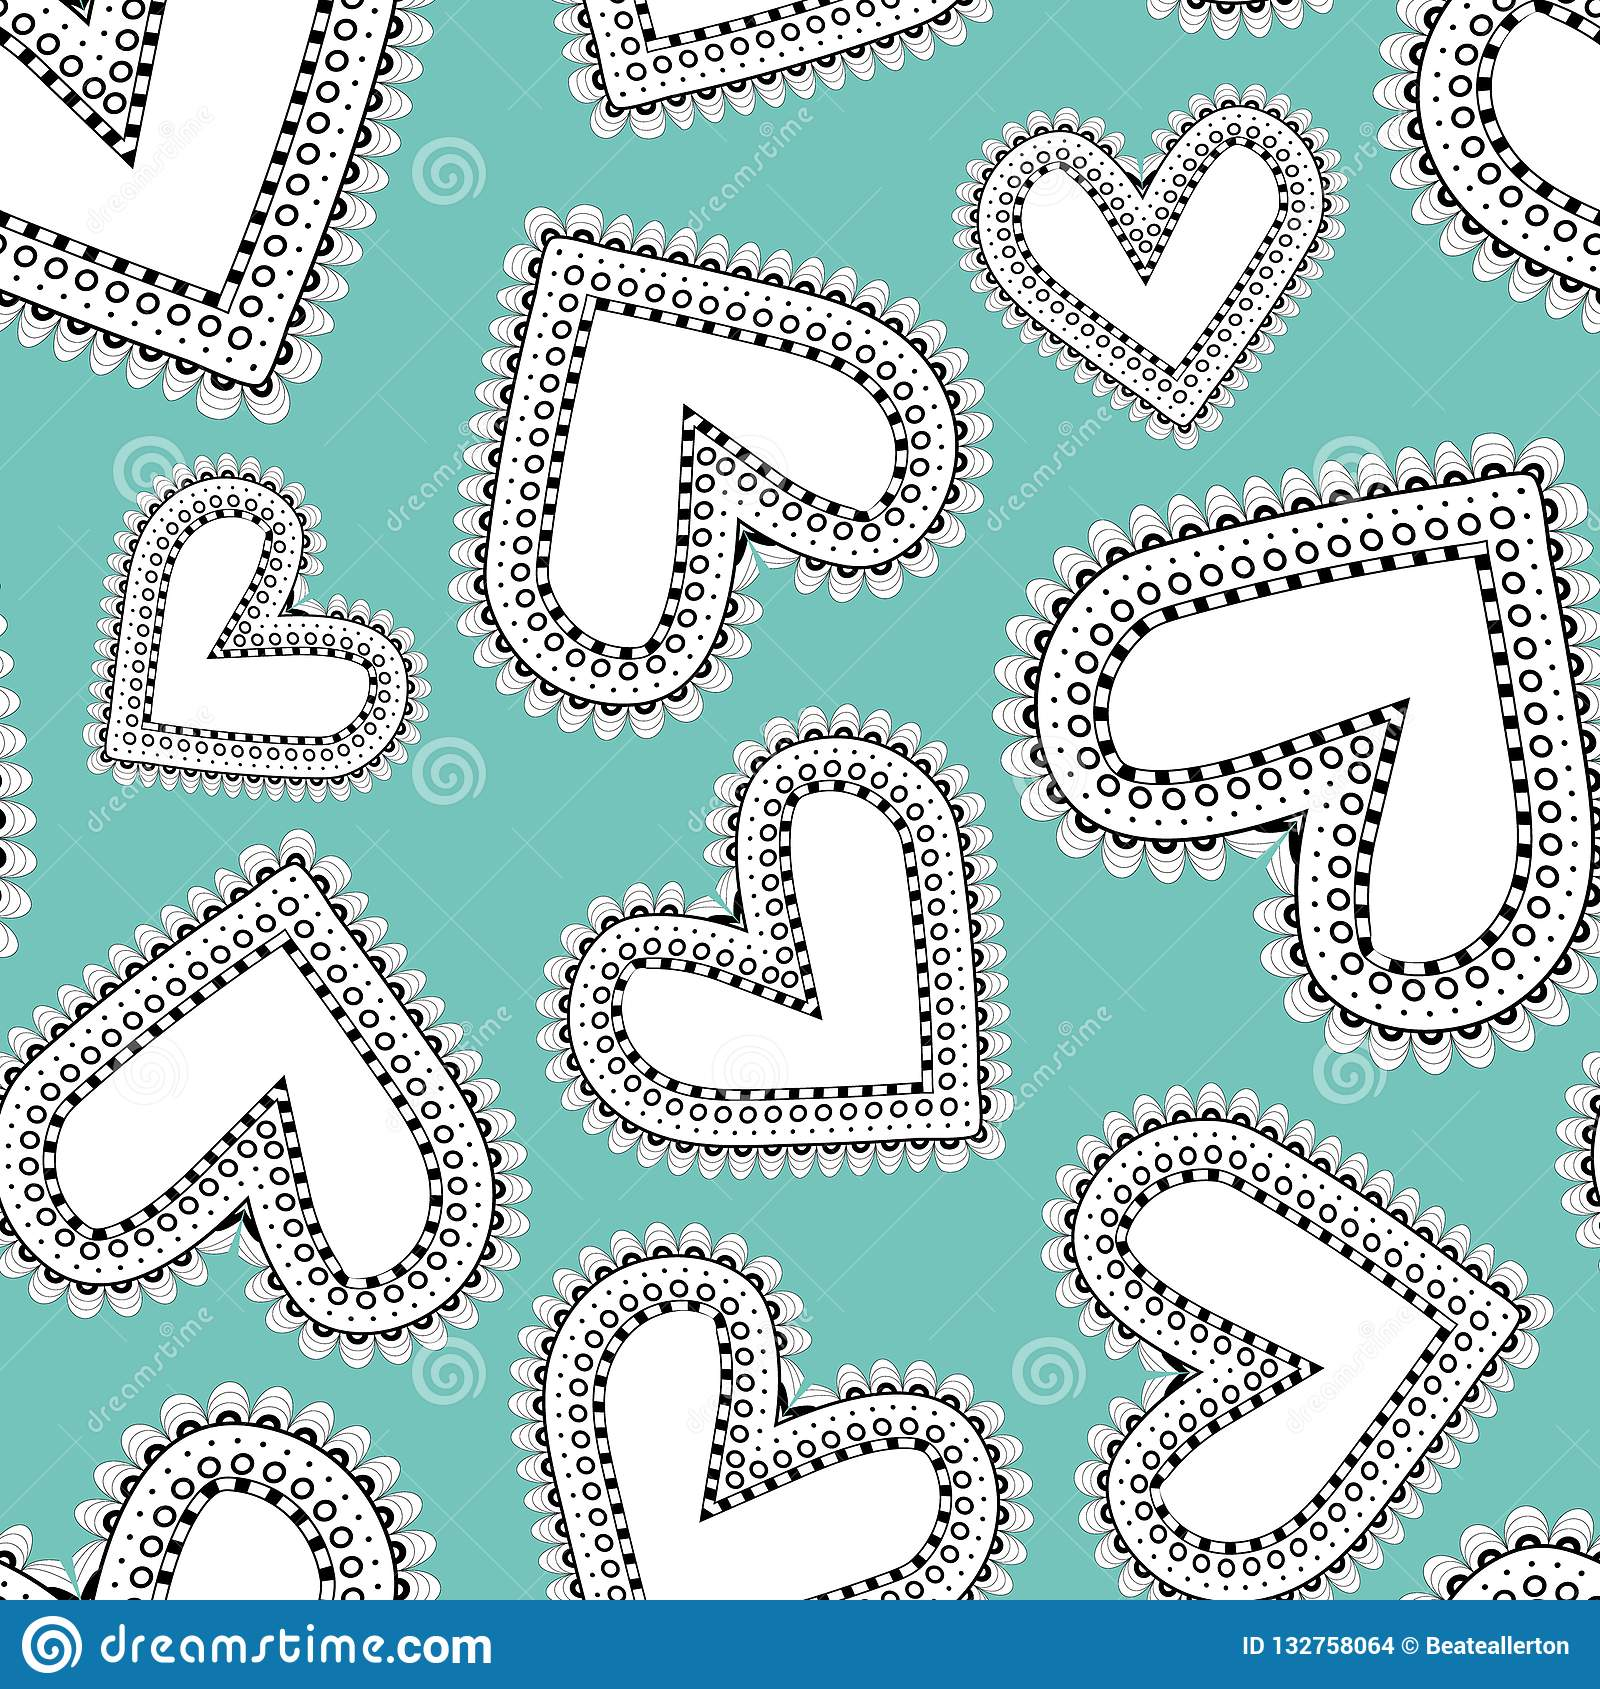 Quirky White And Black Line Art Doodle Hearts As Seamless